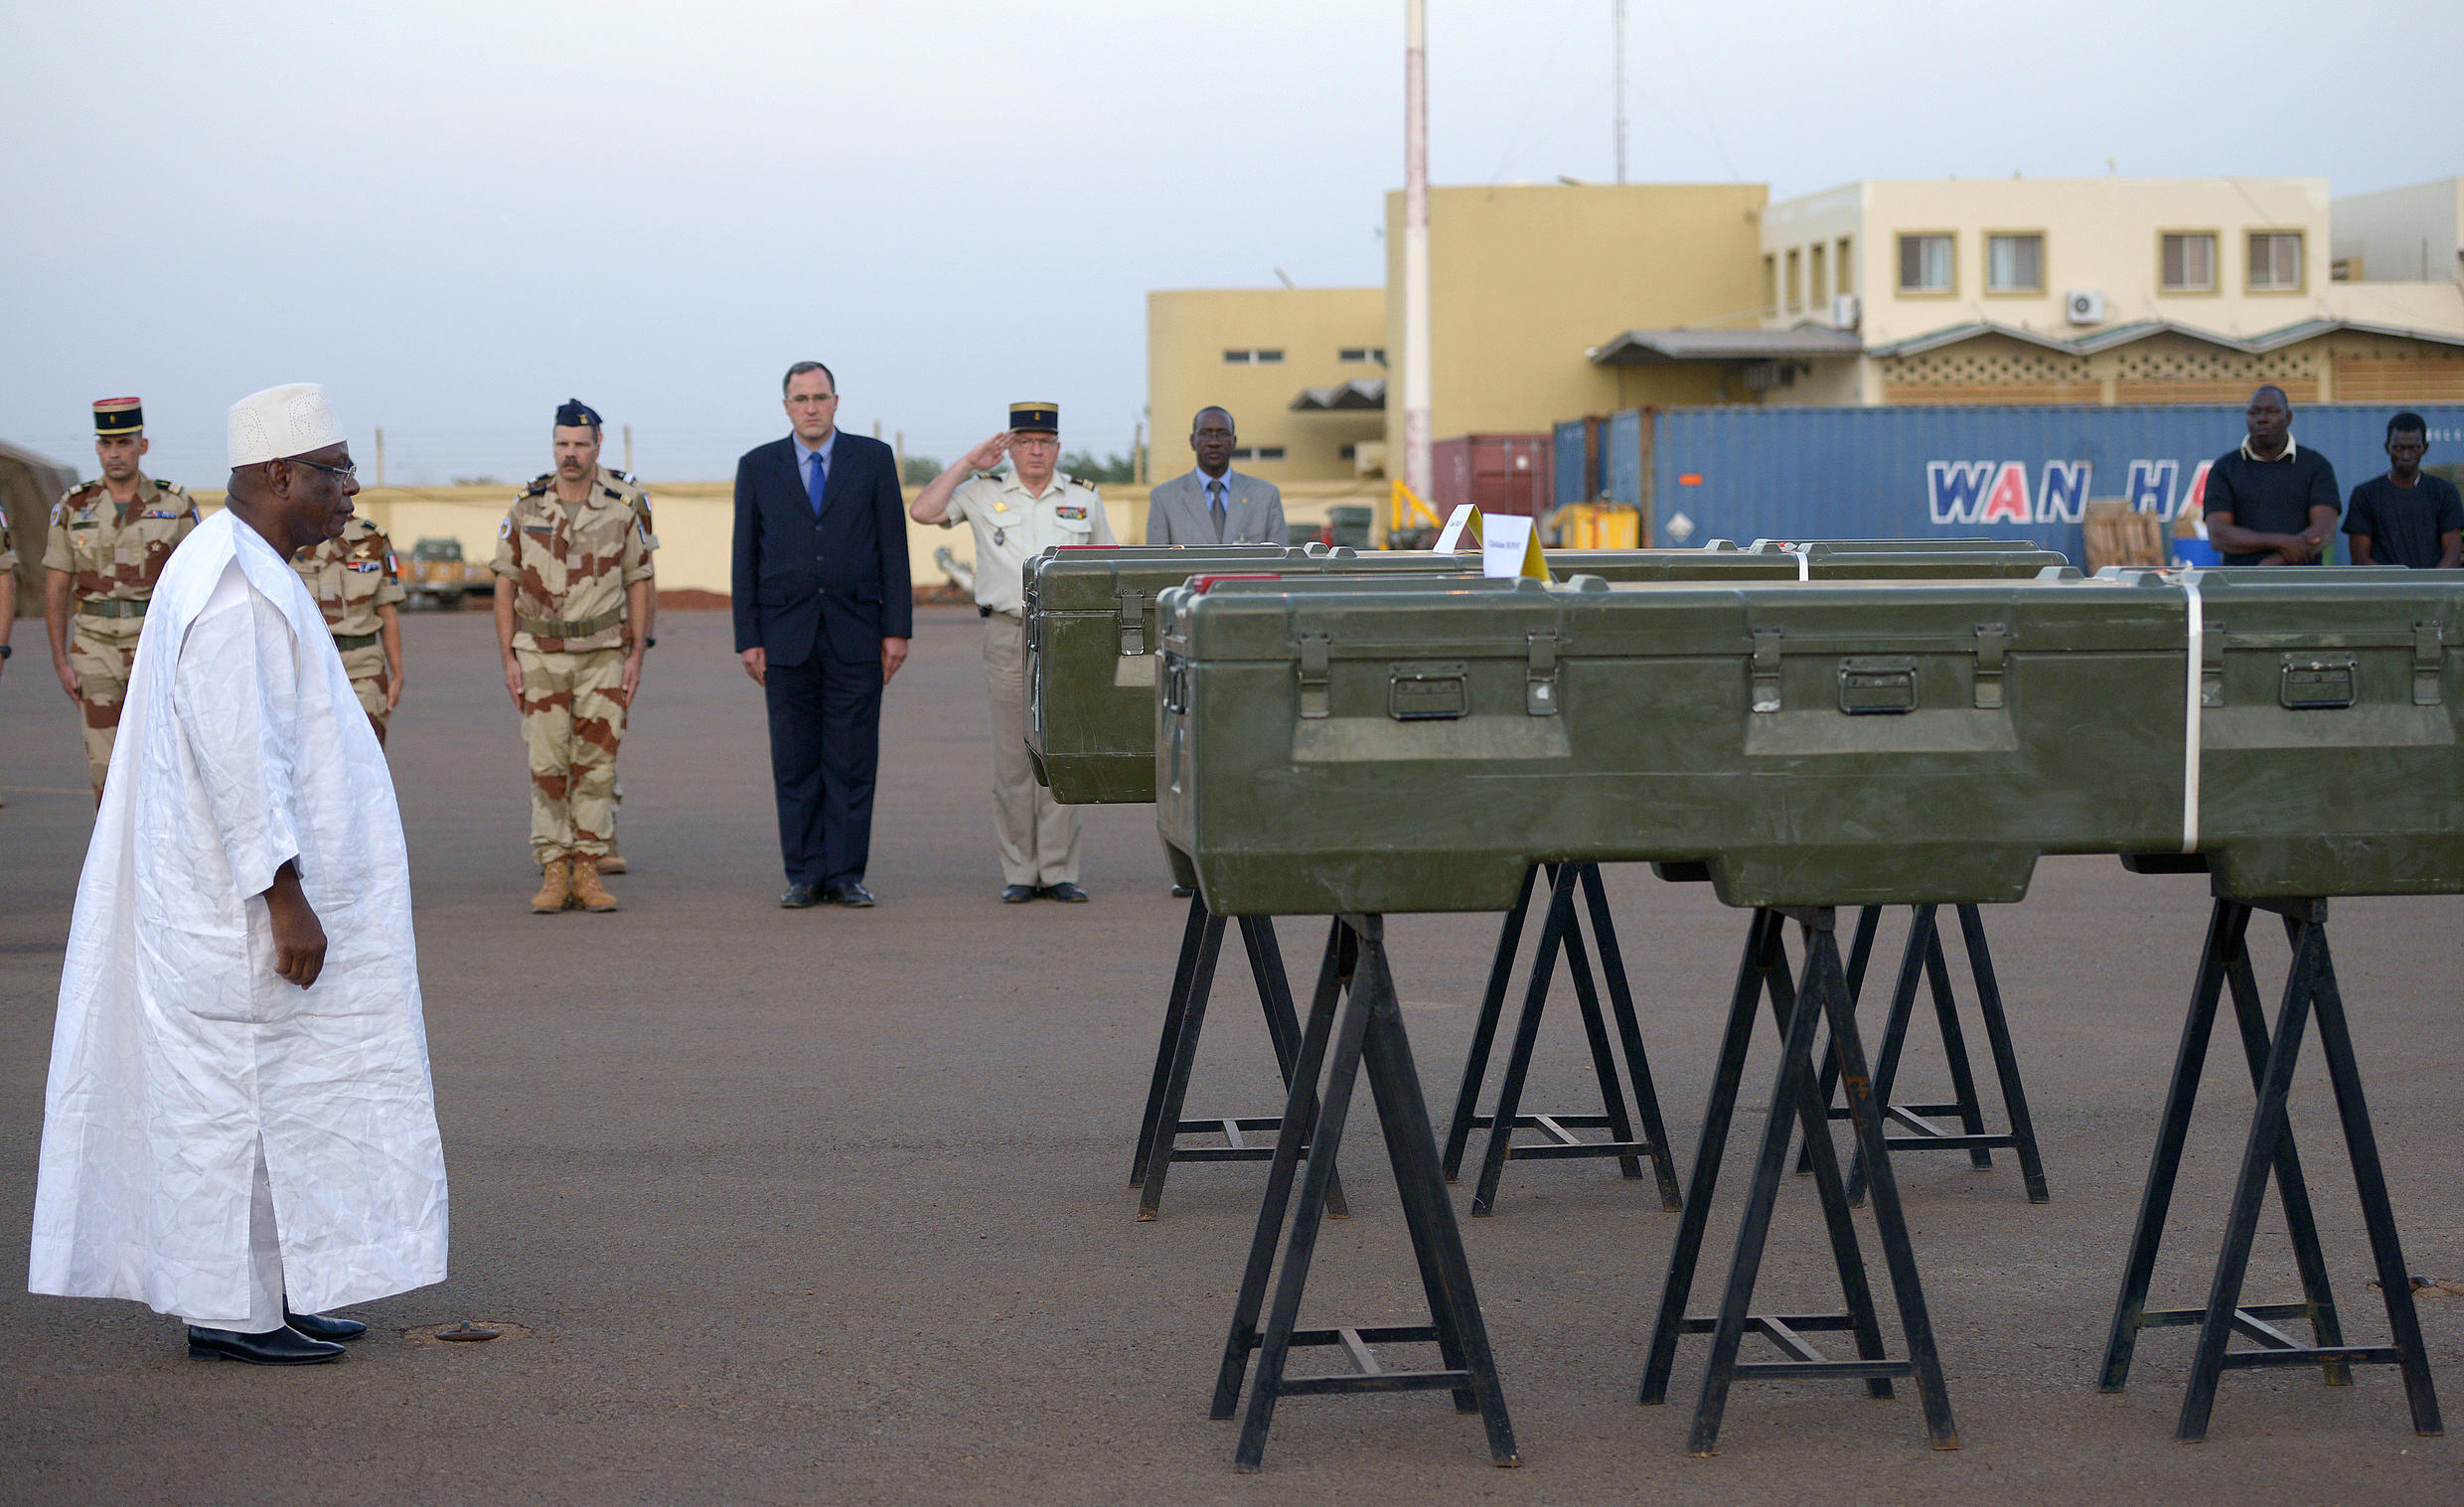 Malian President Ibrahim Boubakar Keita pays homage to the coffins of Ghislaine Dupont and Claude Verlon before they are sent to France